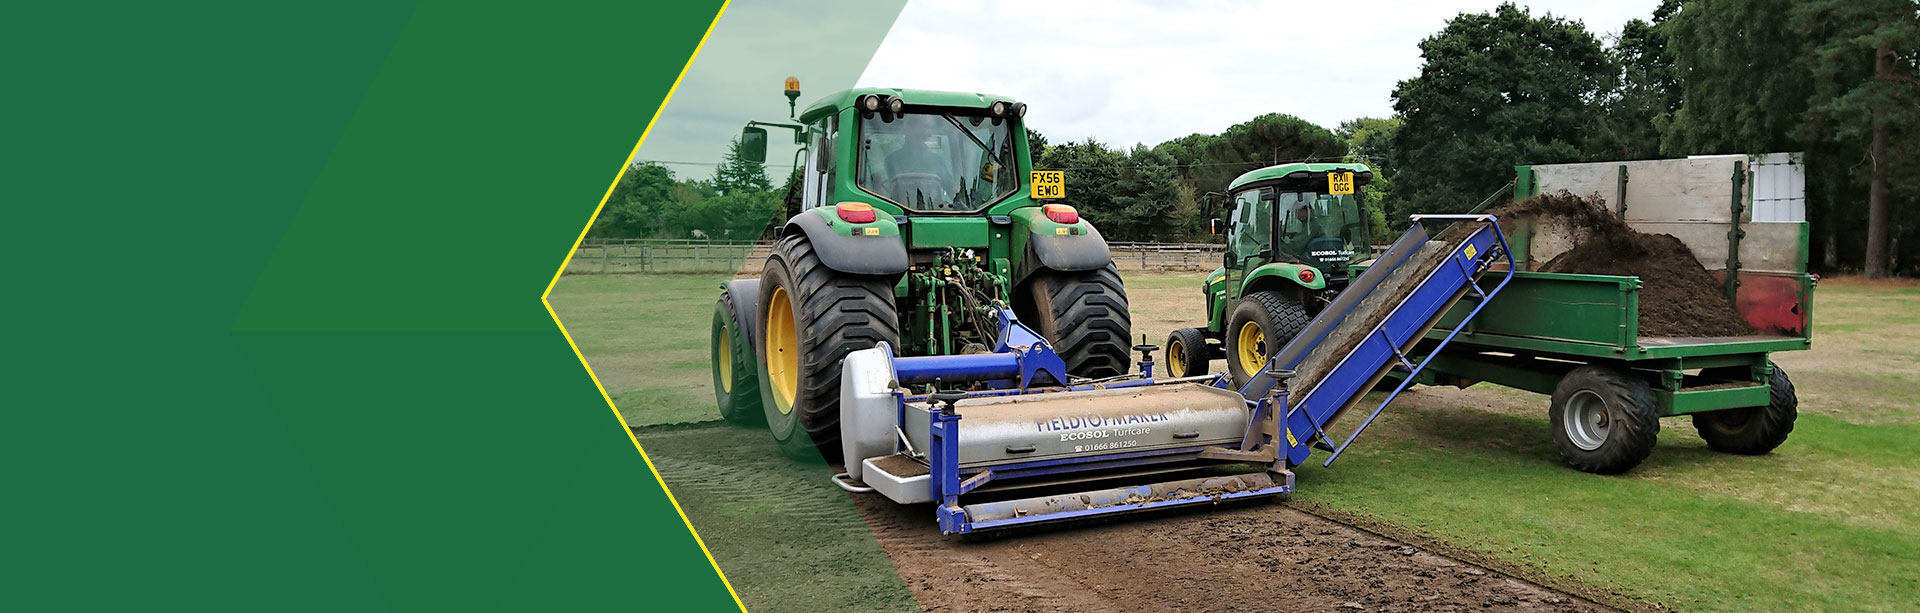 KORO FIELD TOP MAKER